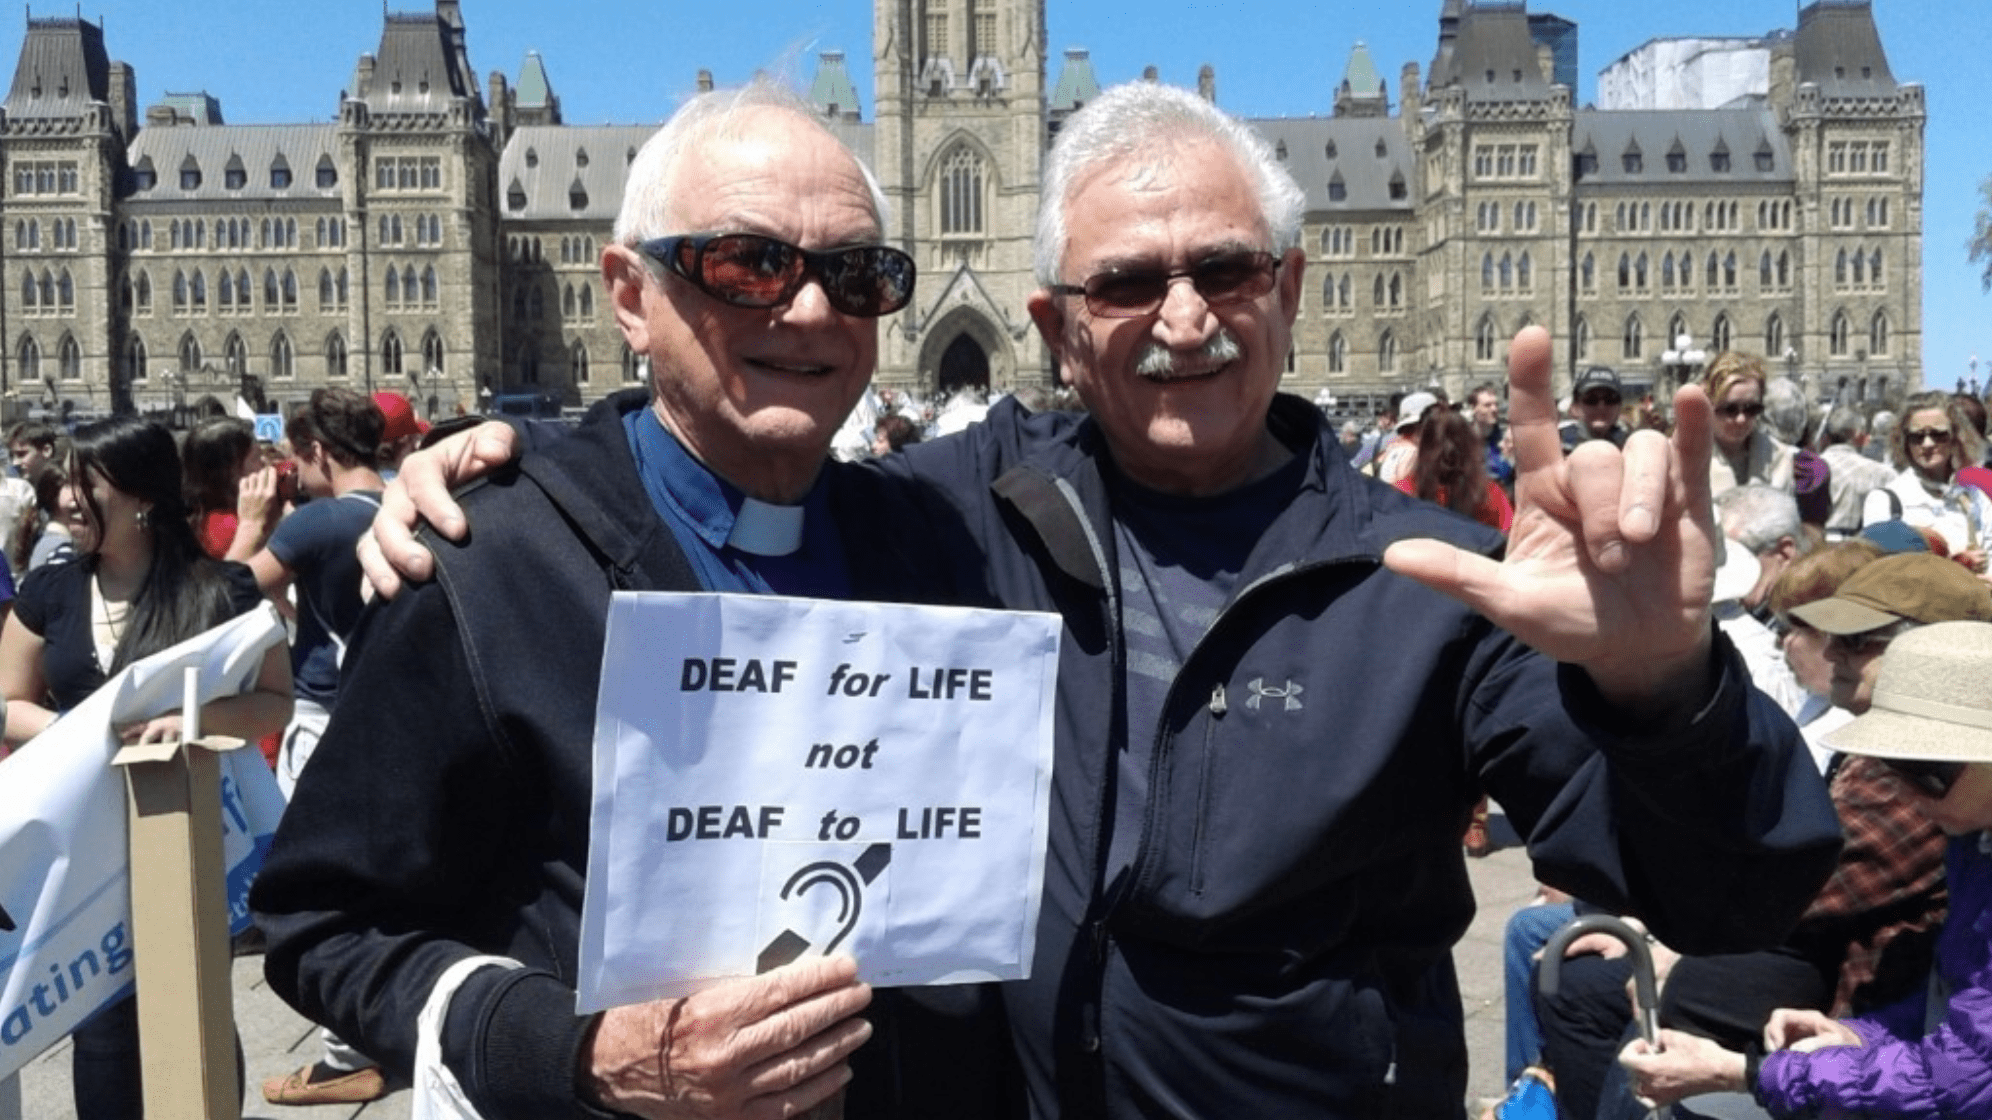 Fr. Monty attends the annual March for Life with members of the Deaf community, Parliament Hill, Ottawa